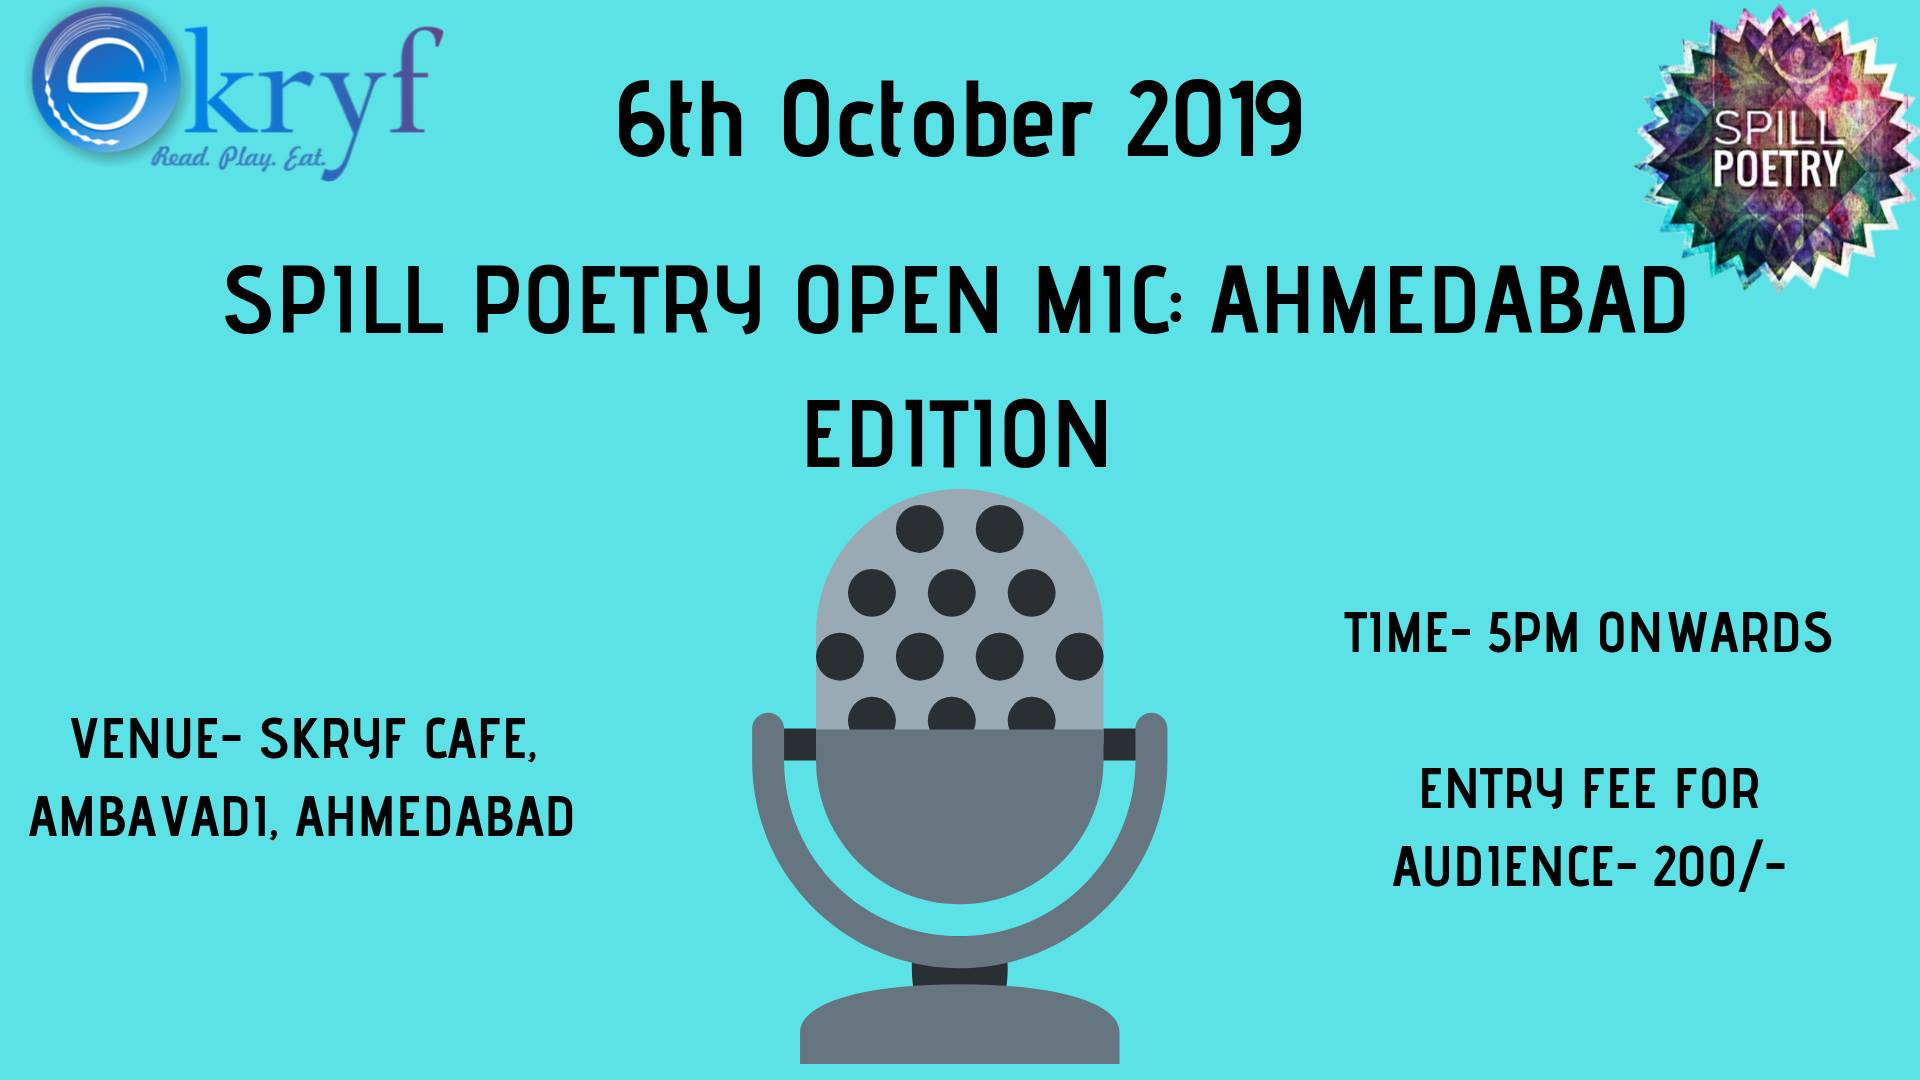 https://creativeyatra.com/wp-content/uploads/2019/09/Spill-Poetry-Open-Mic-Ahmedabad-Edition-1.jpg